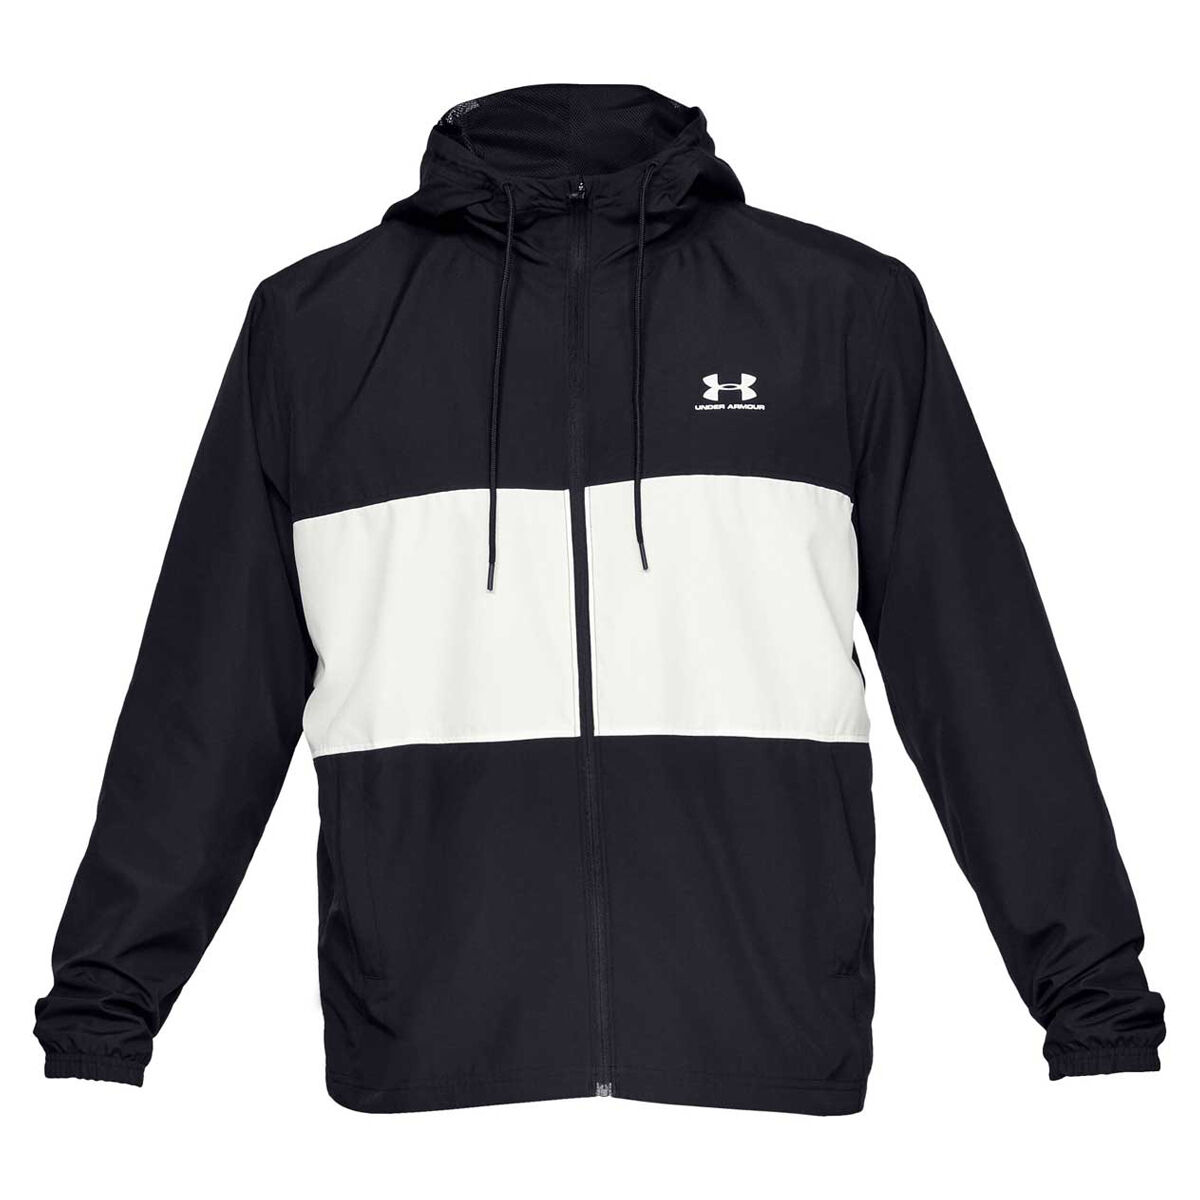 Under Armour Men's Ultimate Team Jacket | Team jackets